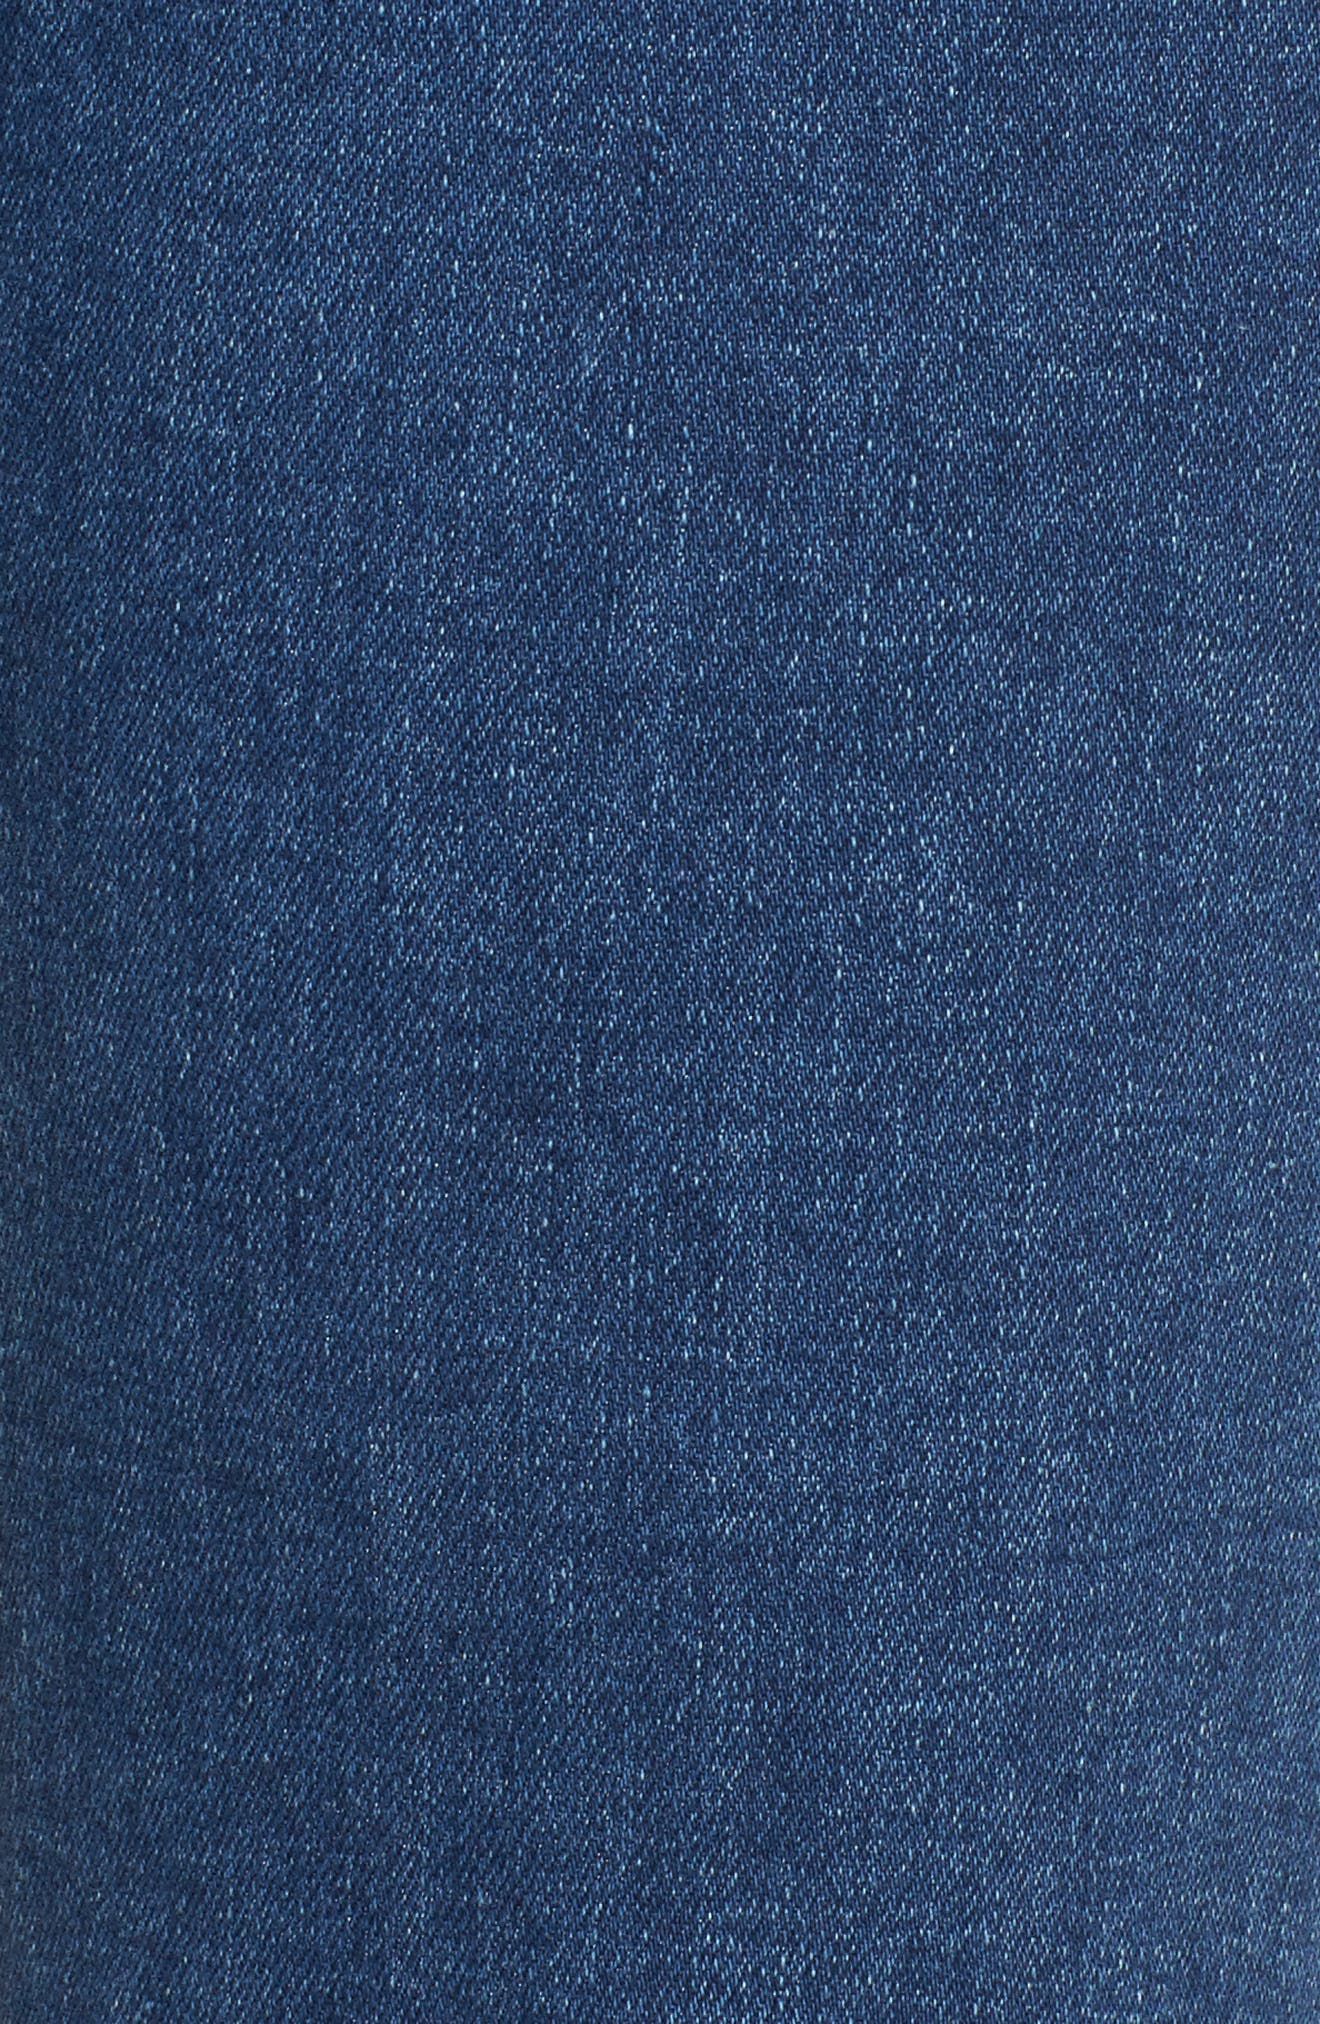 Pearl Embellished Crop Straight Leg Jeans,                             Alternate thumbnail 5, color,                             Garden City